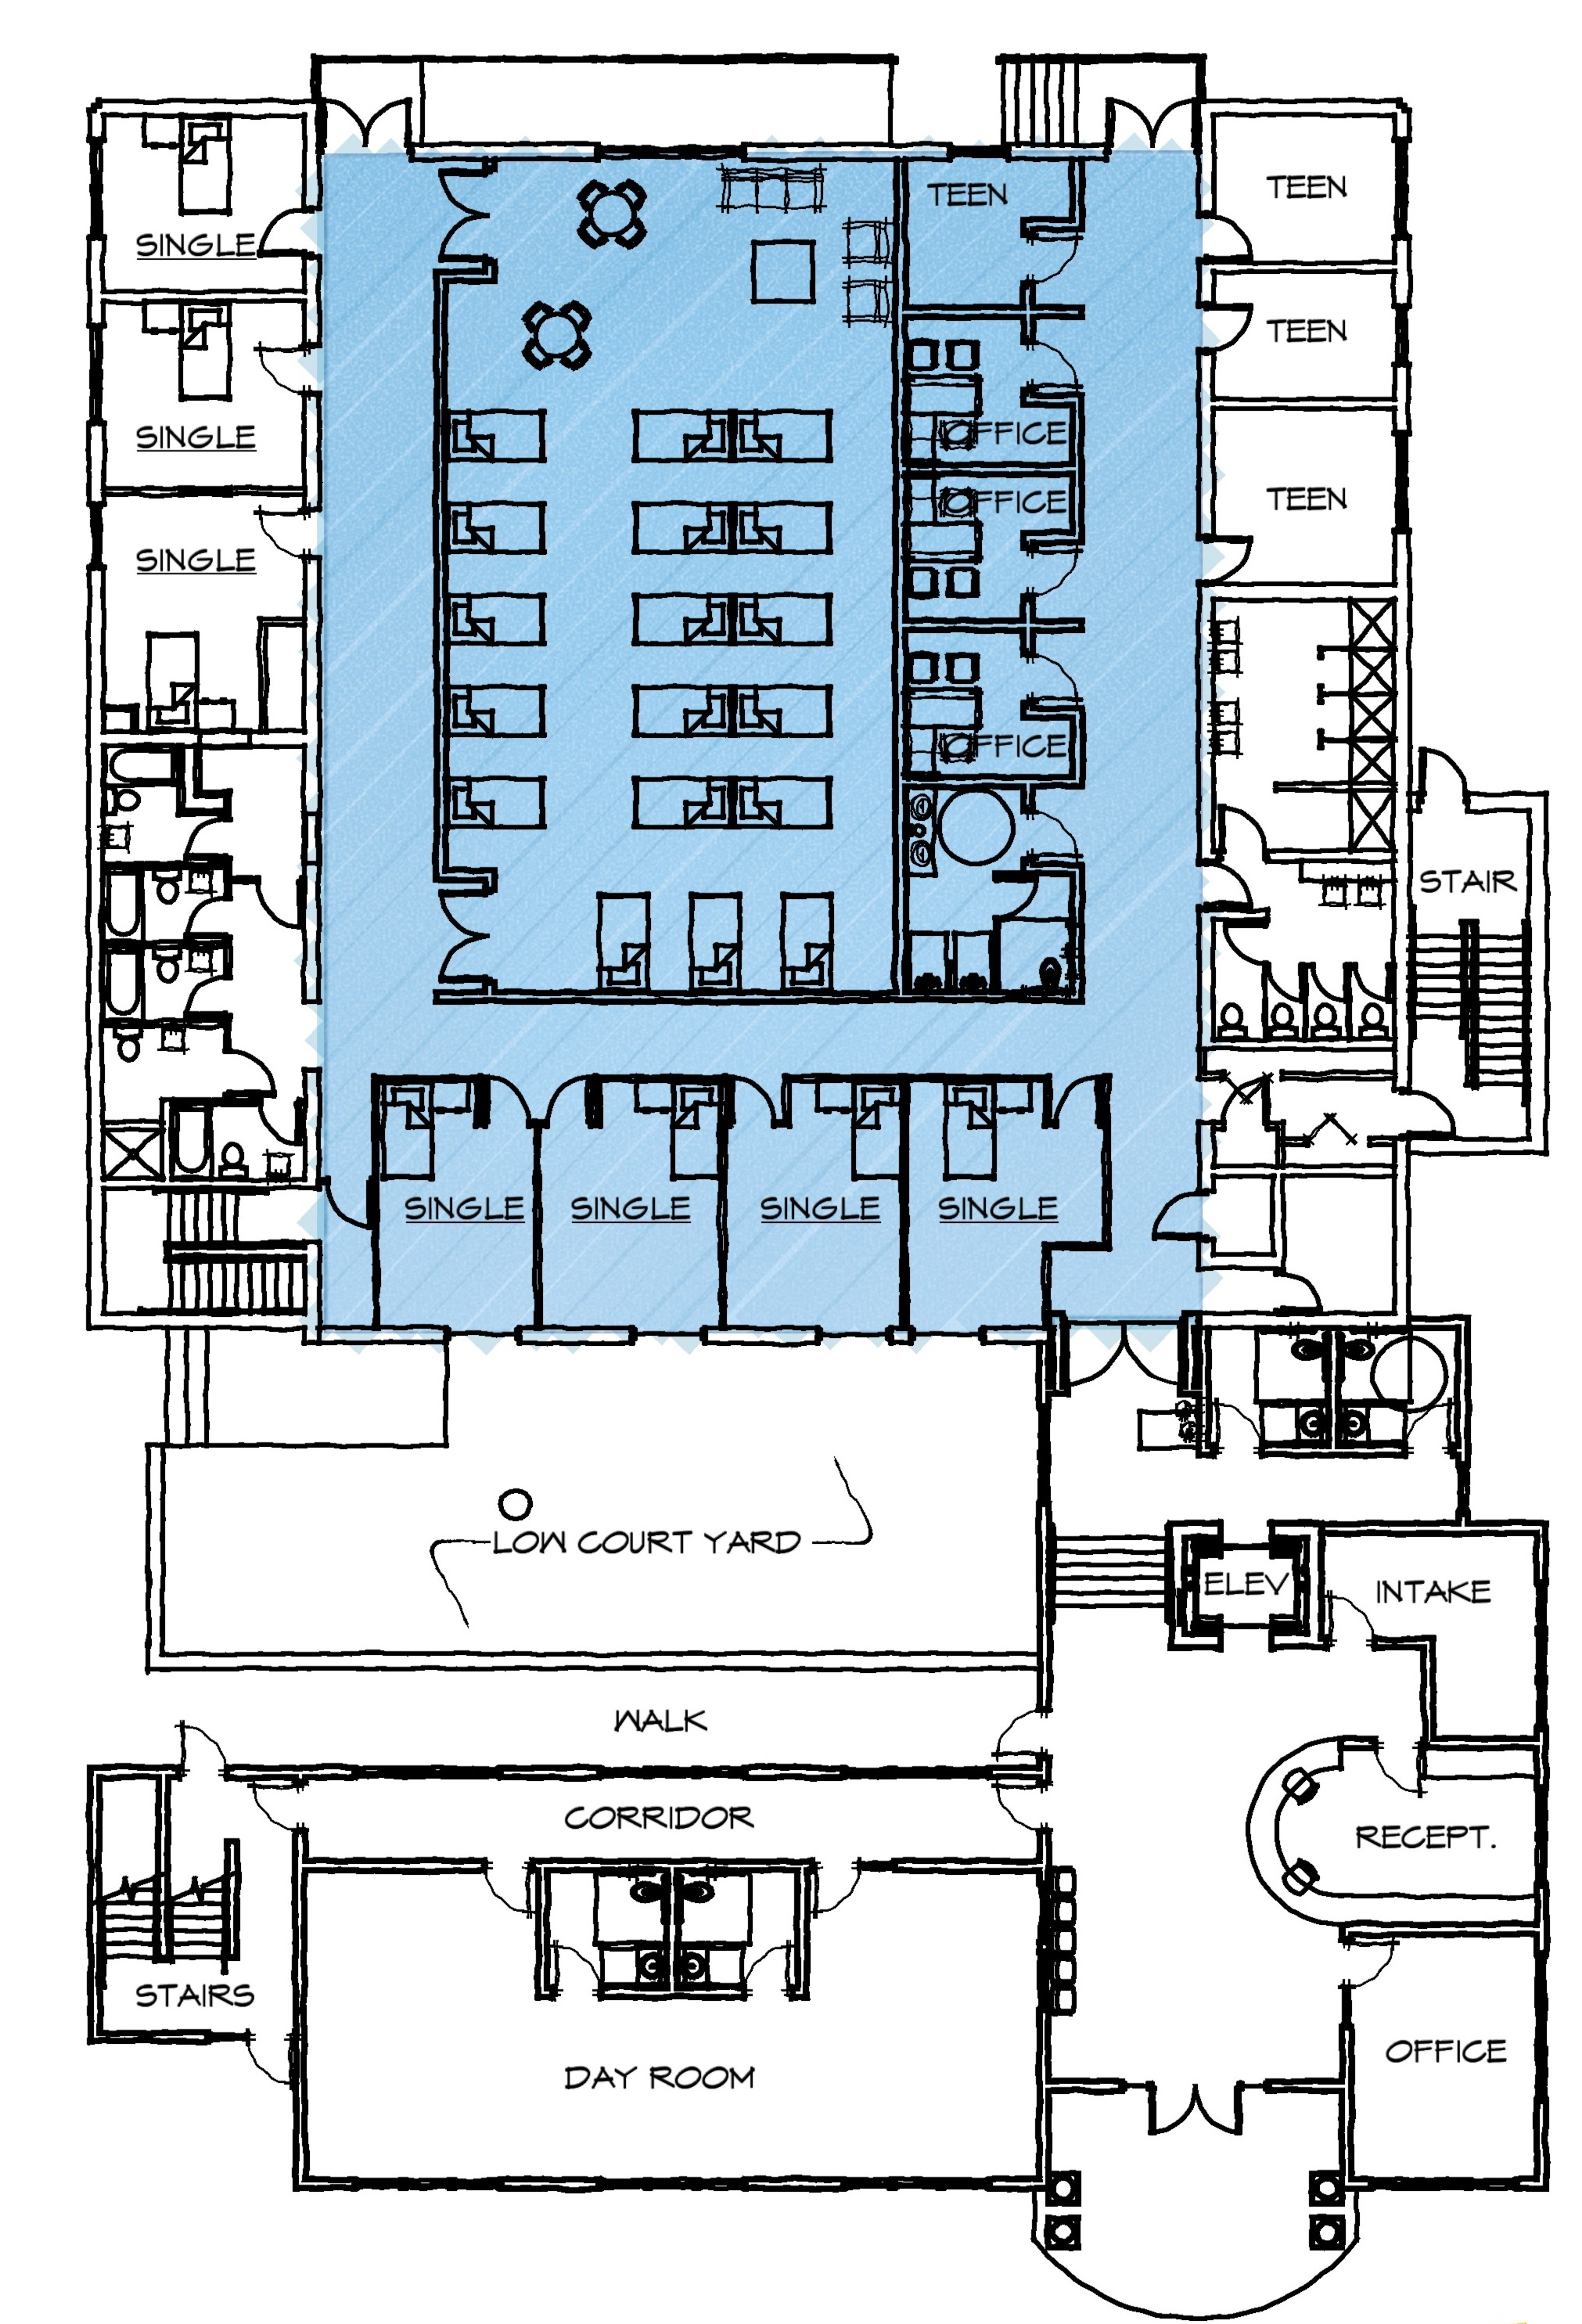 First Floor Plan of the proposed Family Center.